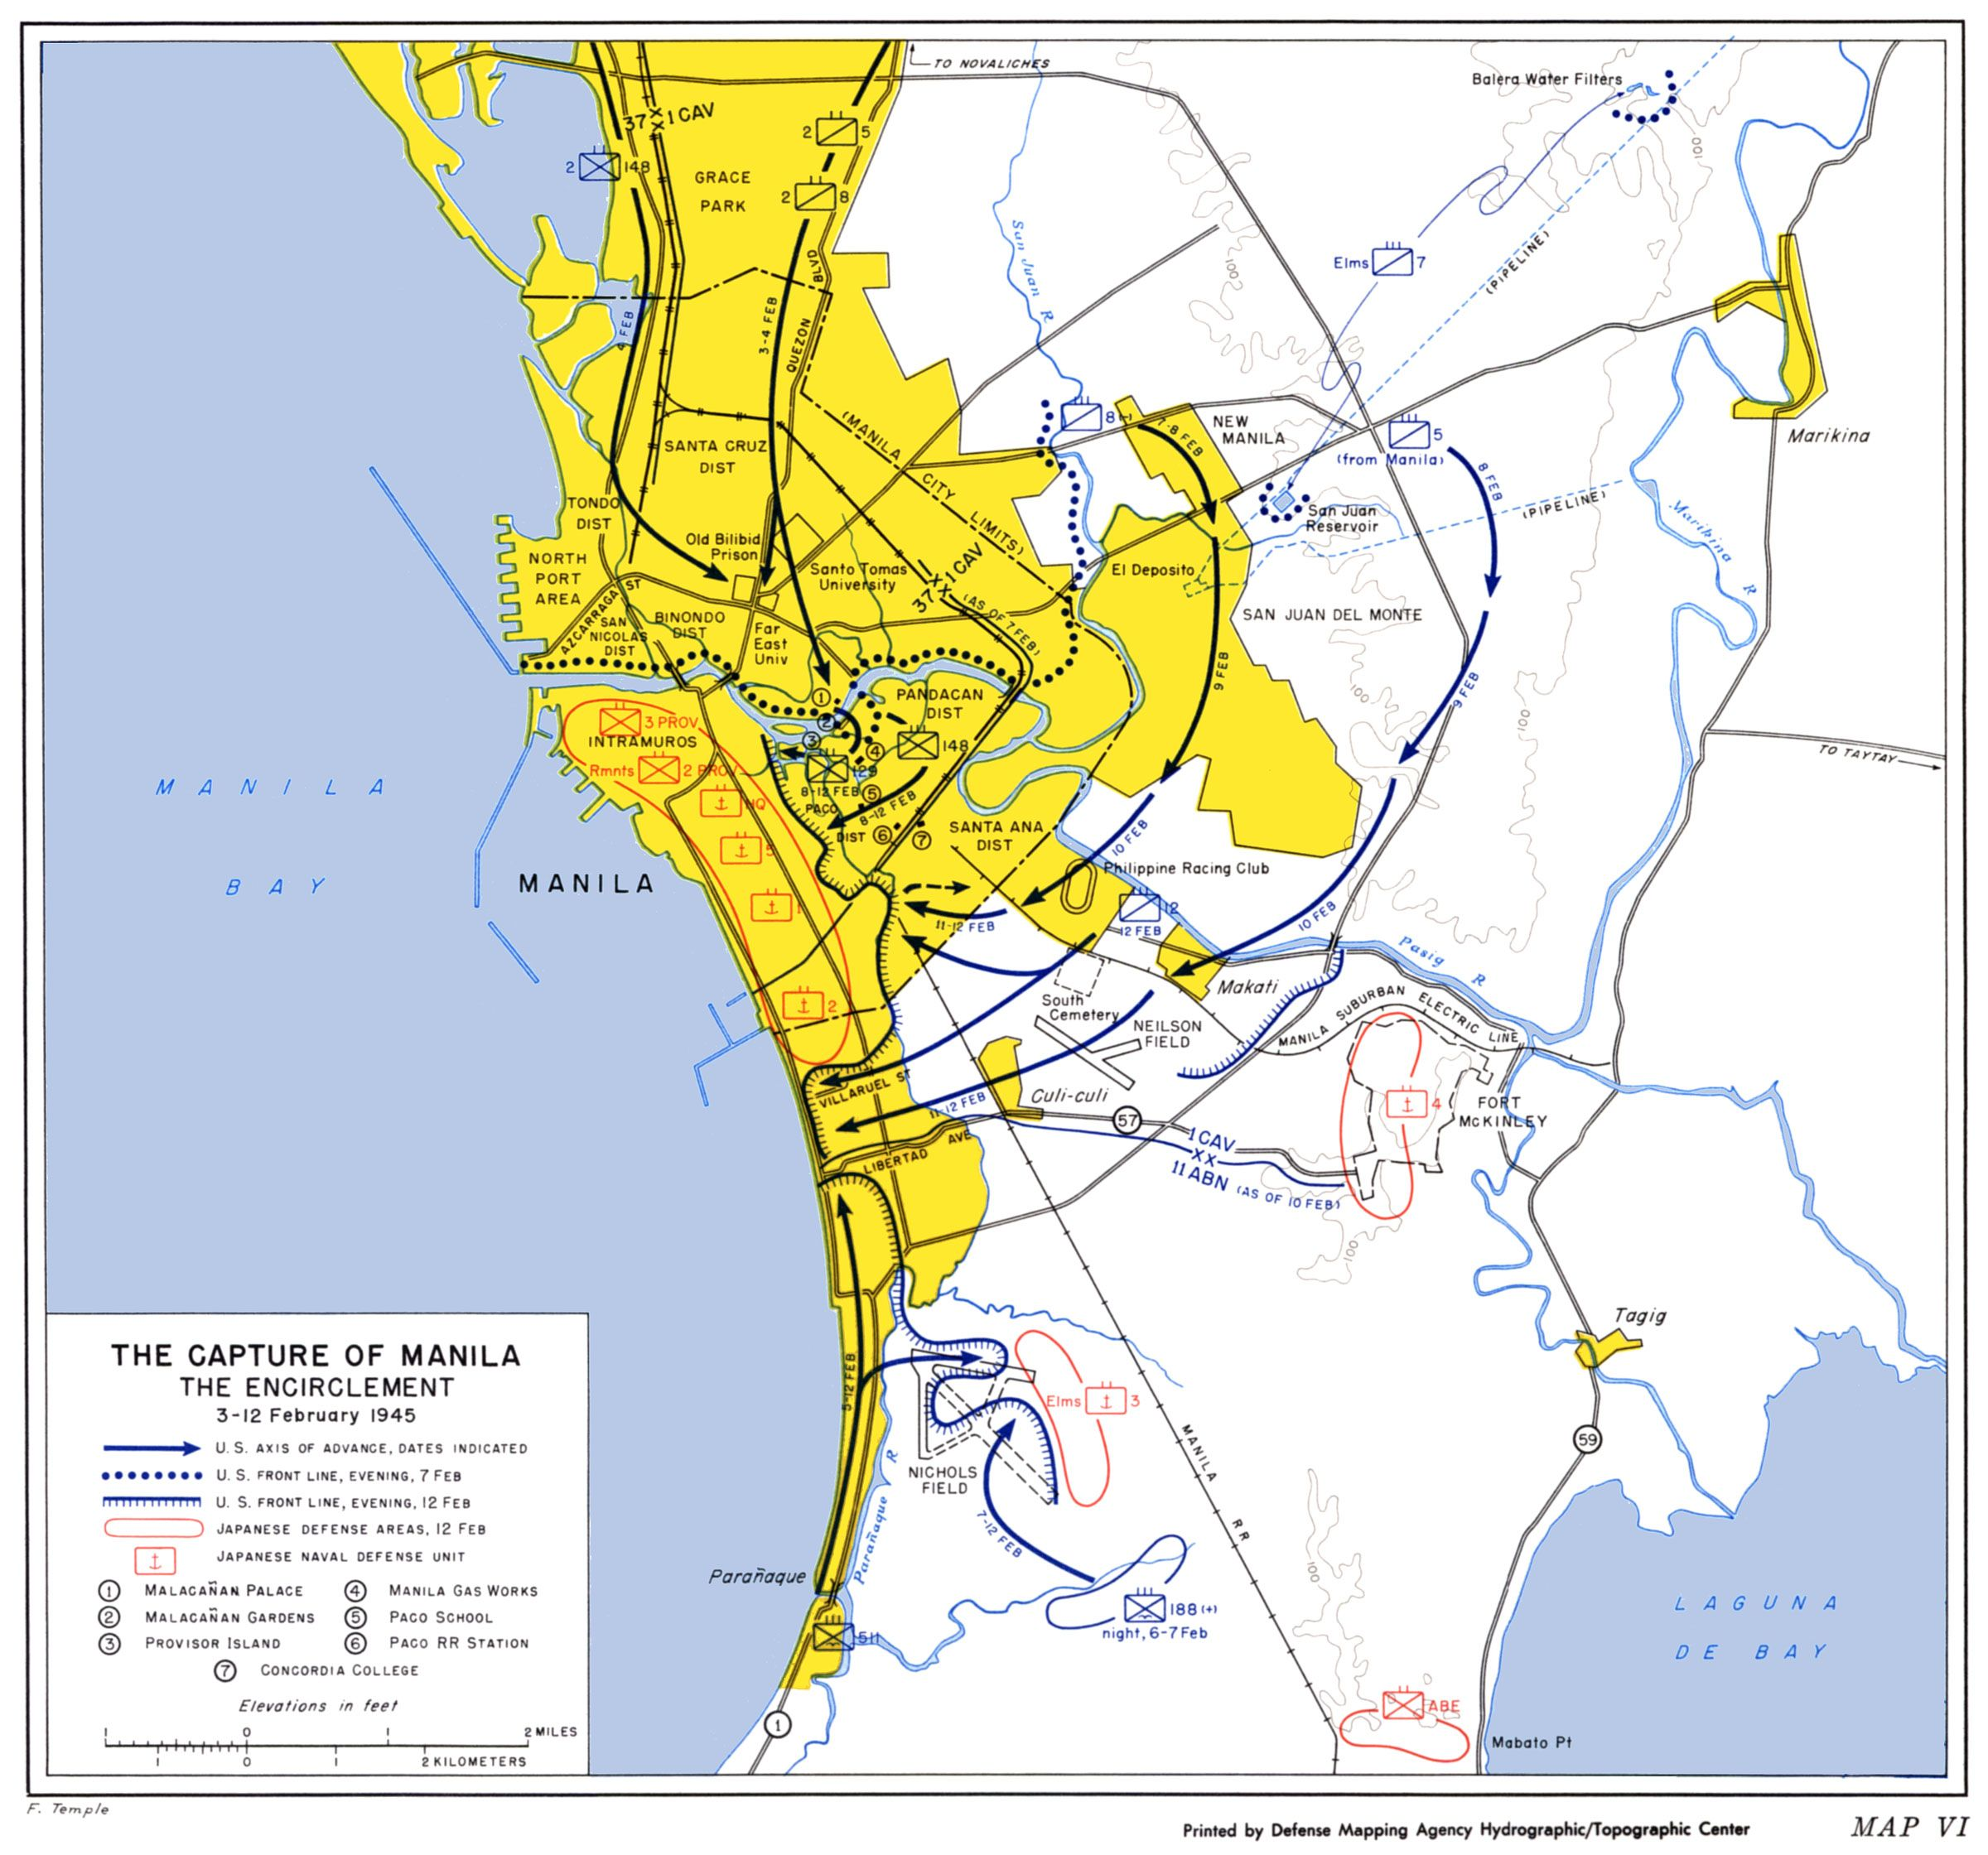 Philippines world war 2 capture of manila maps pinterest manila 1945 capture of manila us army center of military history gumiabroncs Gallery